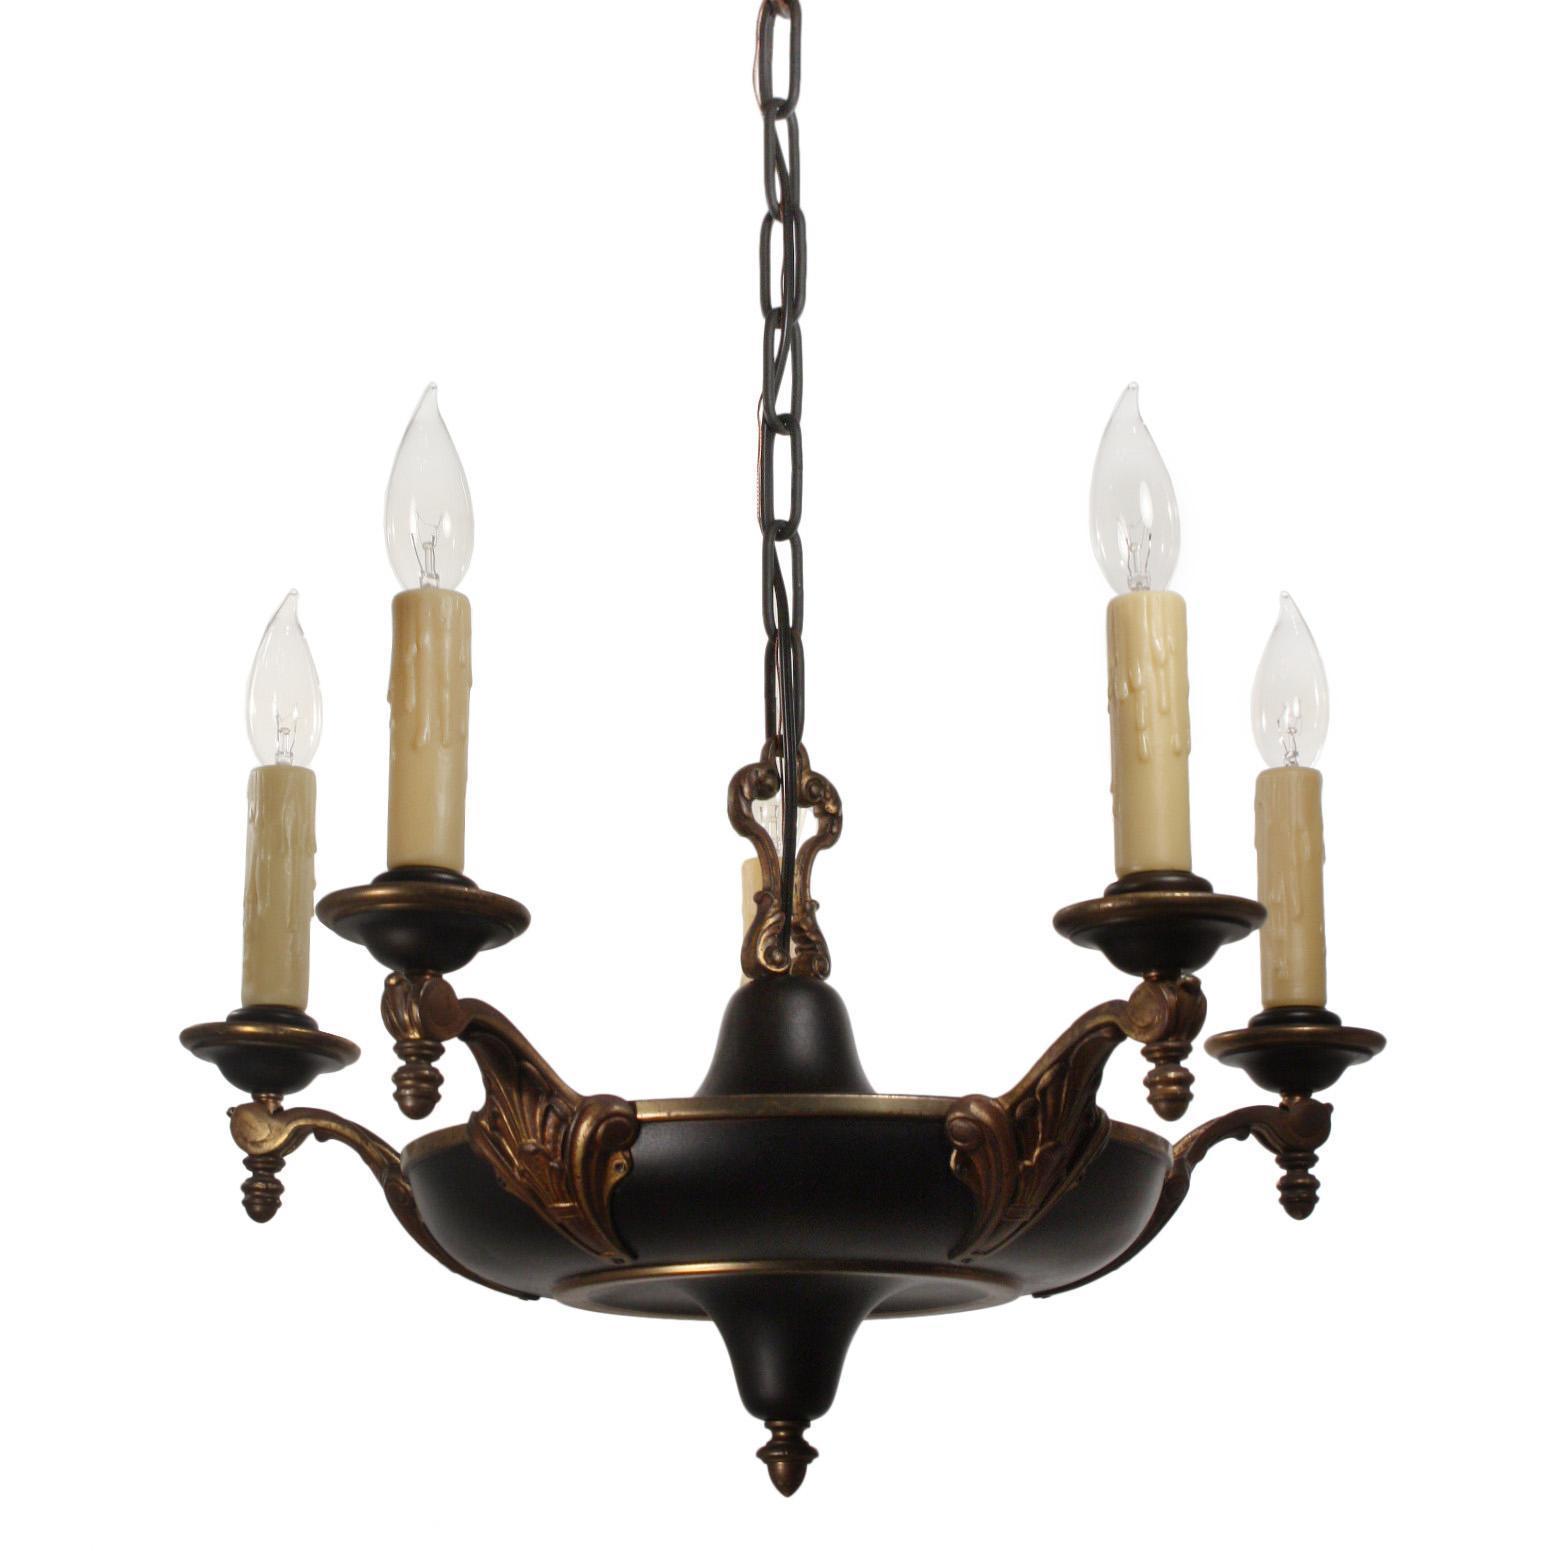 Antique Neoclassical Two-Tone Chandelier, c. 1910